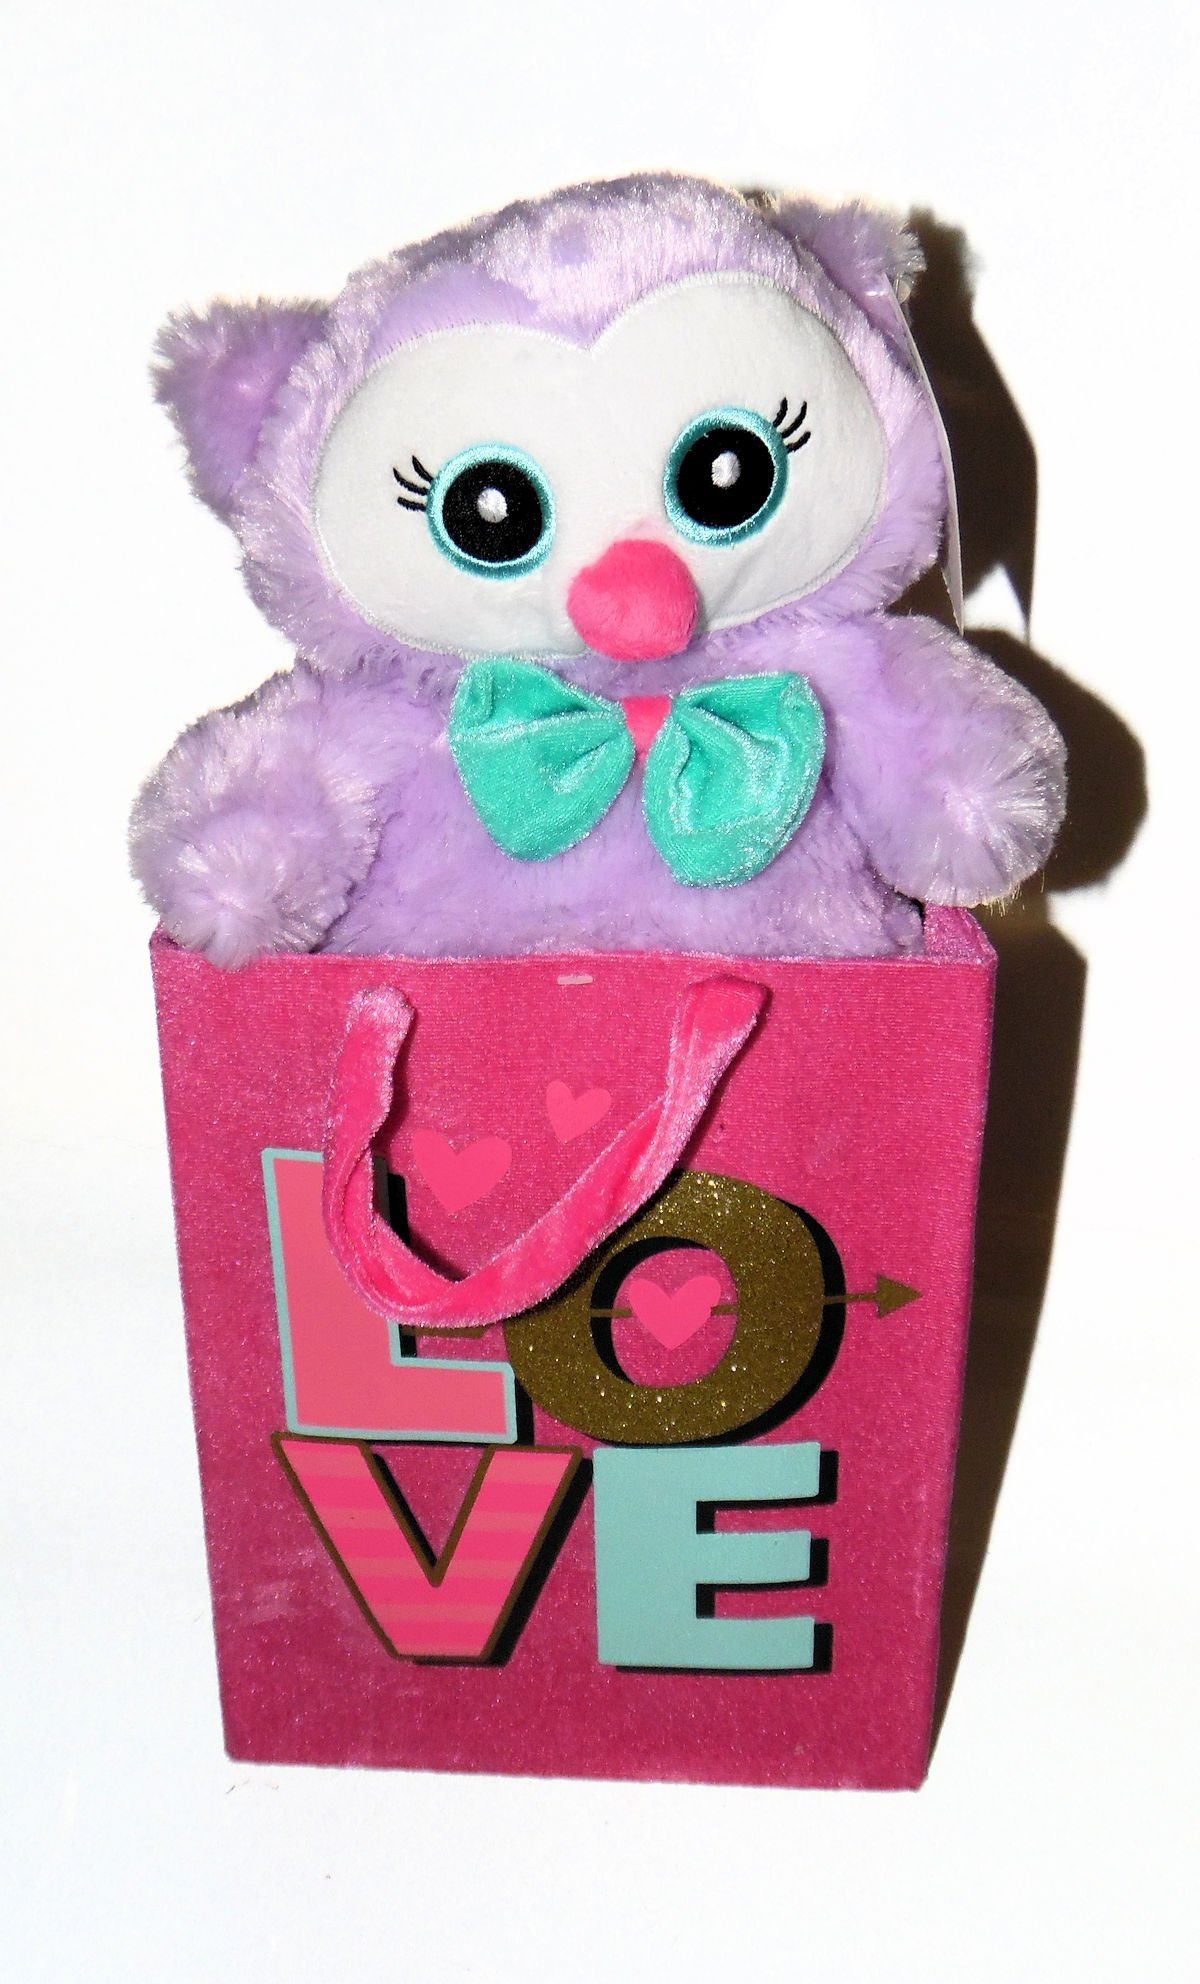 Purple Owl Pal Stuffed Animal Plush in a Stiff Velvet Bag with LOVE printed on it